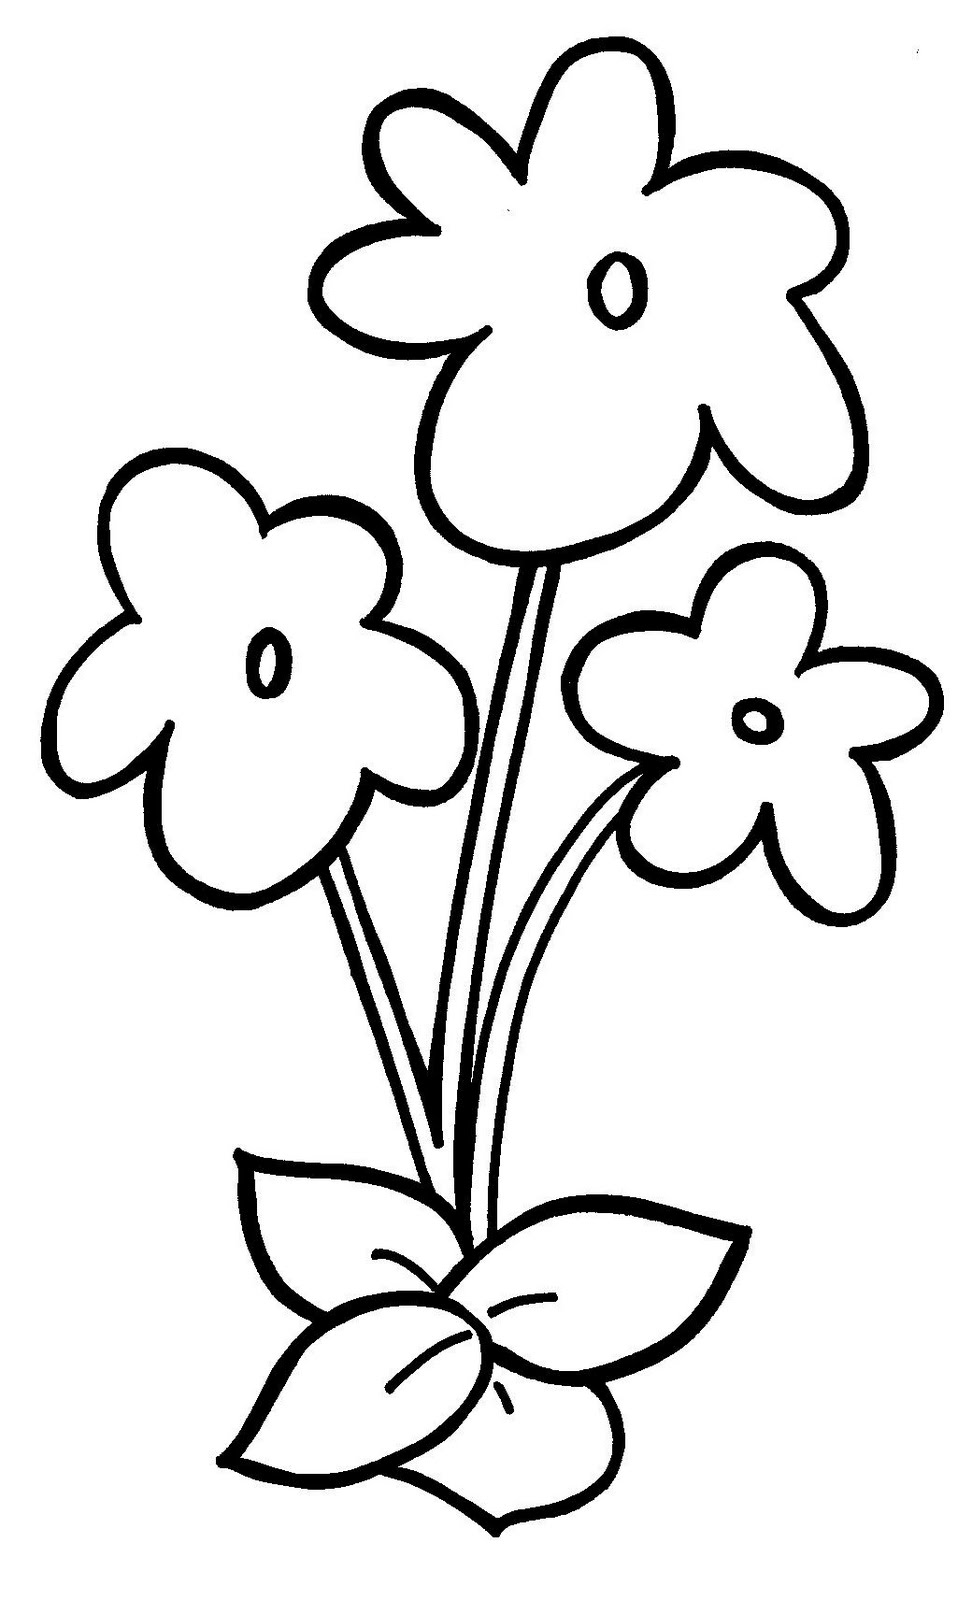 girls planting flowers coloring pages - photo#19